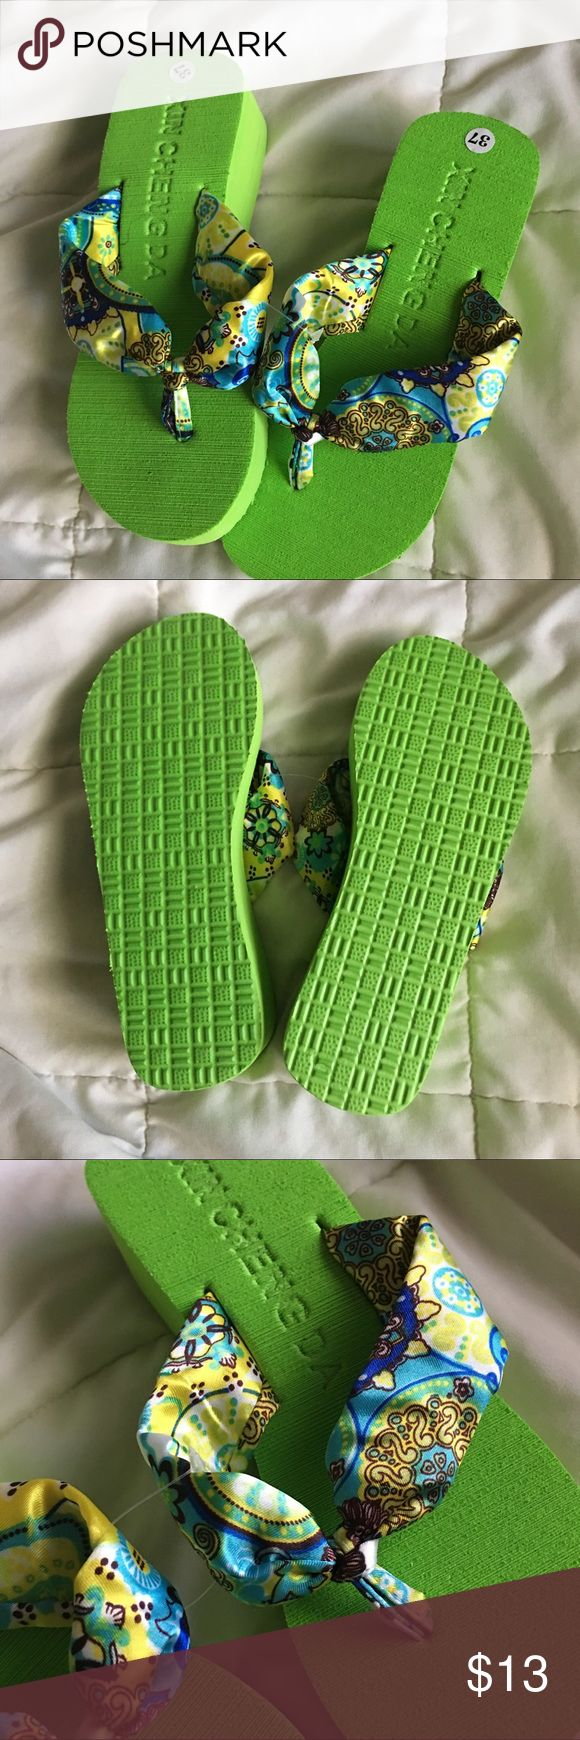 Cute Green Heeled Sandals Stylish green sandals/flipflops, perfect for a day at the beach 👙👡  - Brand new, never worn 🏷 - Marked 37 (or commonly known as a size 7) although as a size 7 myself these do not fit me. I believe they would fit a size 6 (maybe 6 1/2) properly.  - No Trades 🚫 No Paypal  If you have any questions, feel free to ask in the comments below 😊 Shoes Sandals